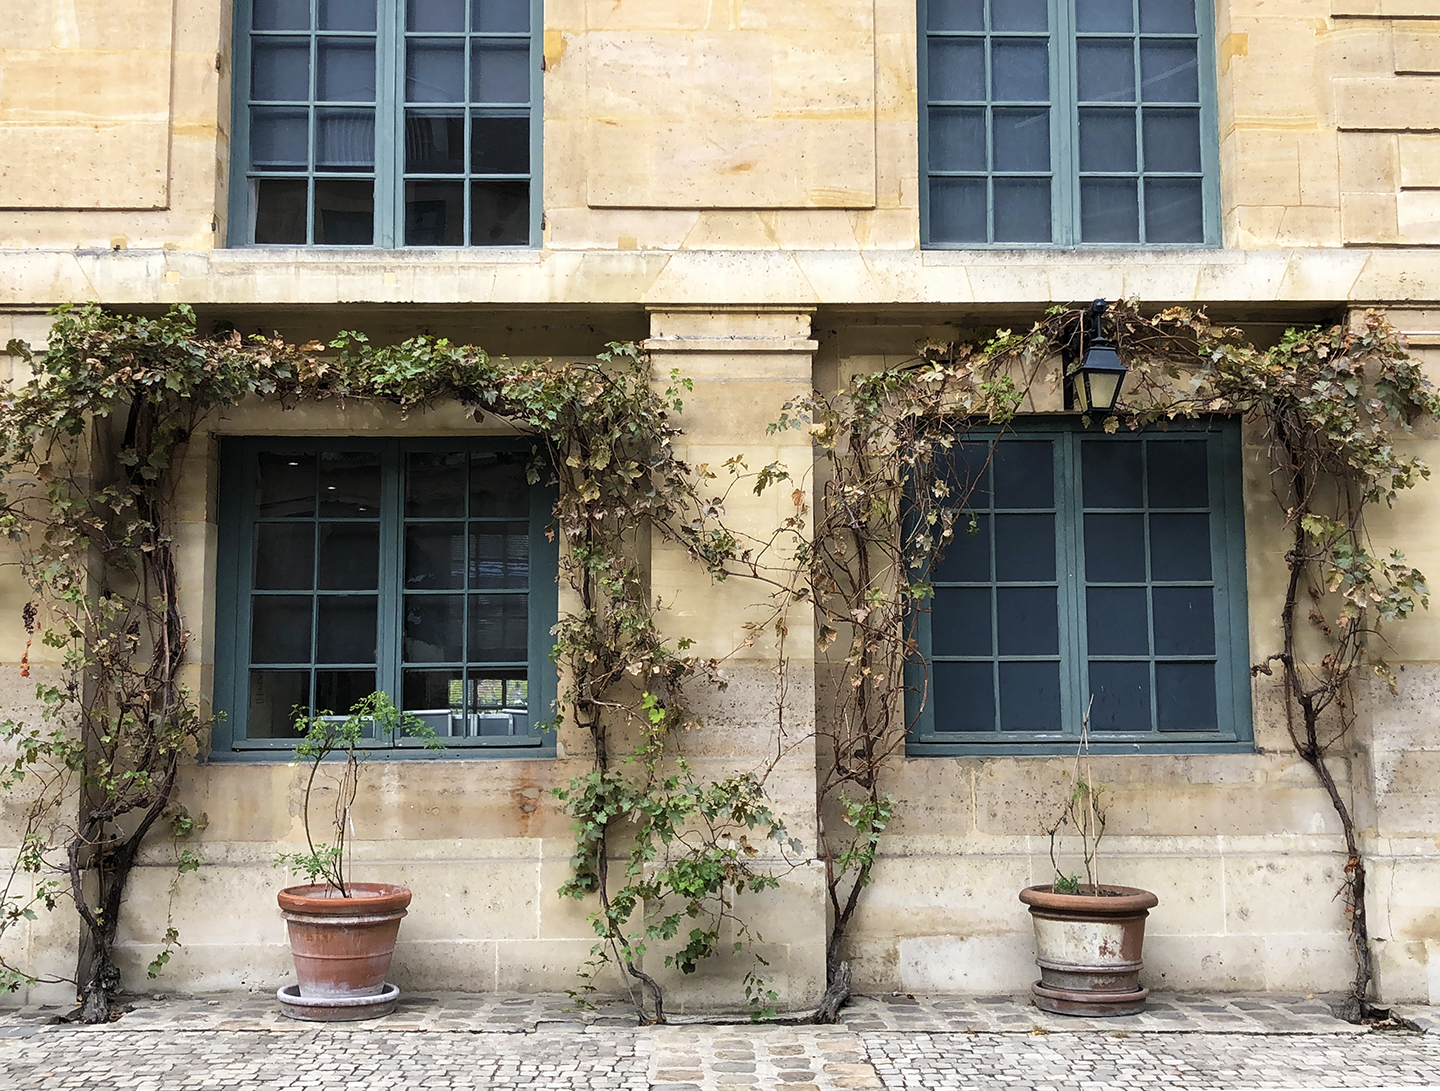 This is why you MUST walk into any open courtyard when strolling in Paris…